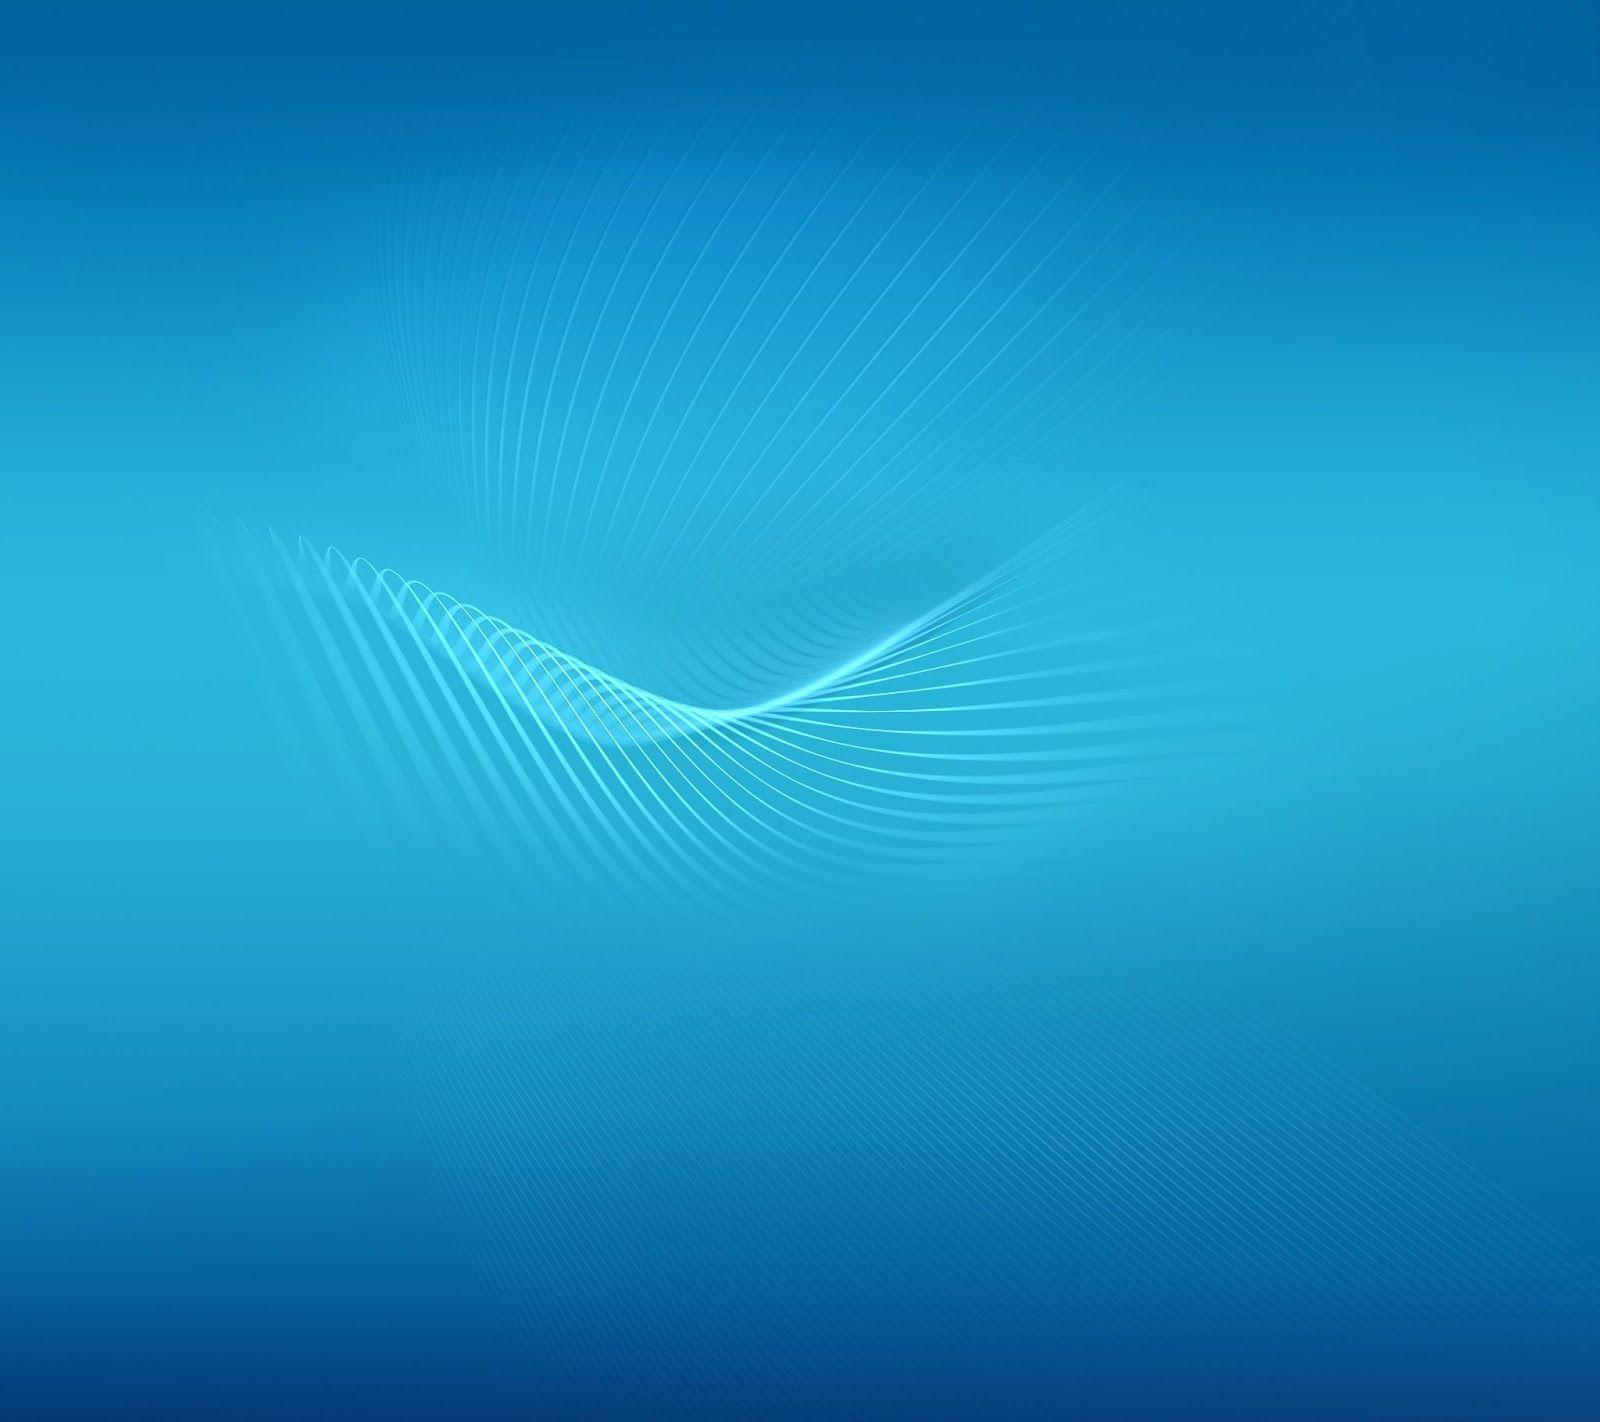 Vivo Hd Wallpapers 1080p Popular Desktop Wallpaper